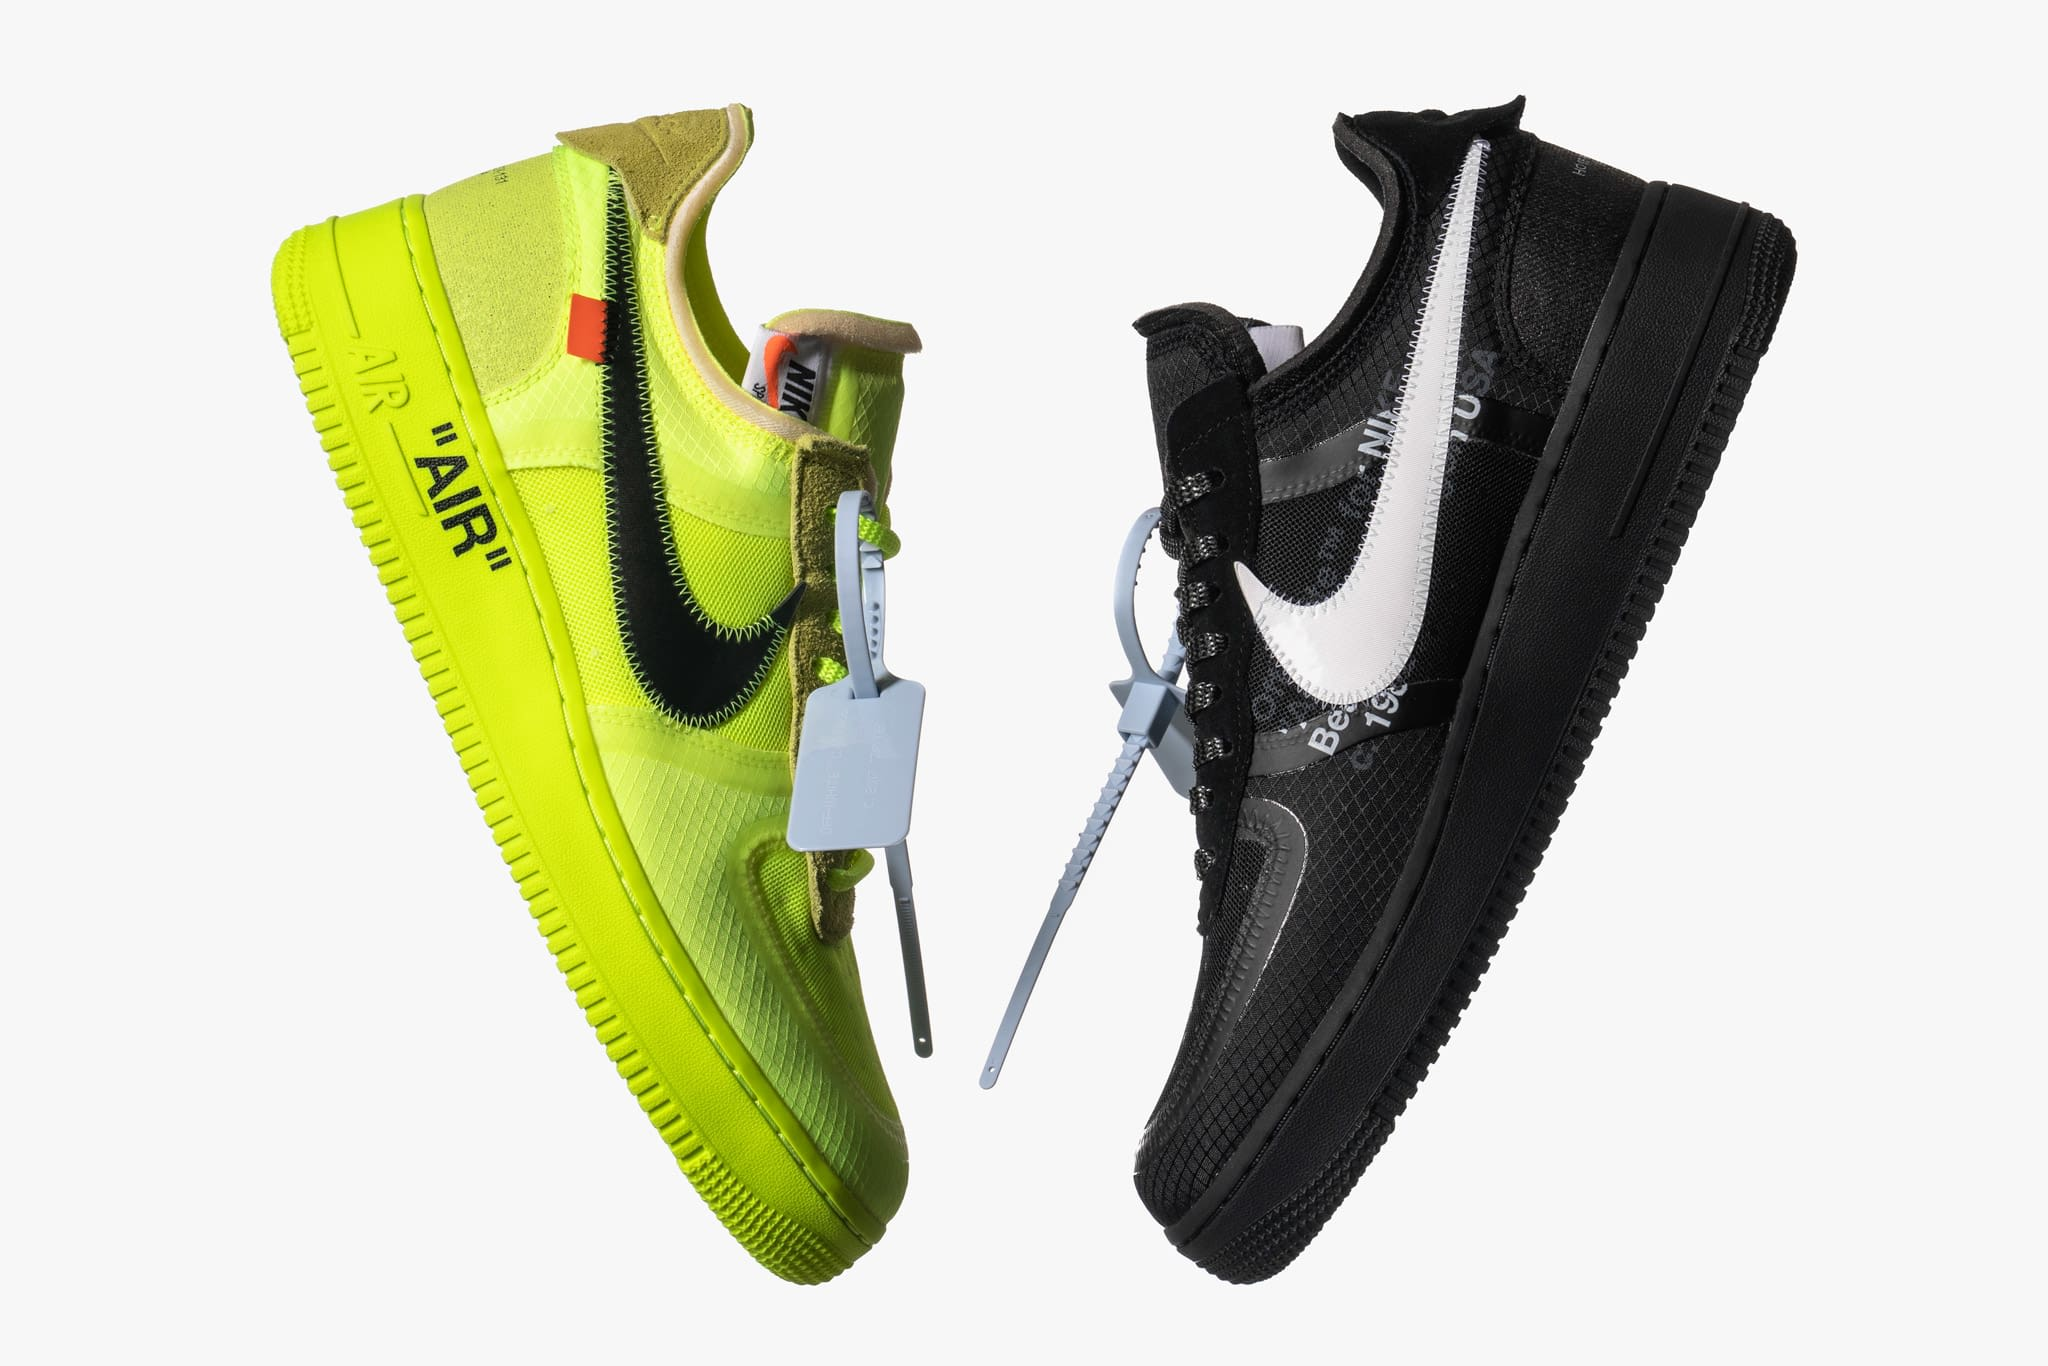 sin cable Lectura cuidadosa pasatiempo  Nike x Off-White 'The Ten' Air Force 1 Pack | Online Raffle Details | HAVEN